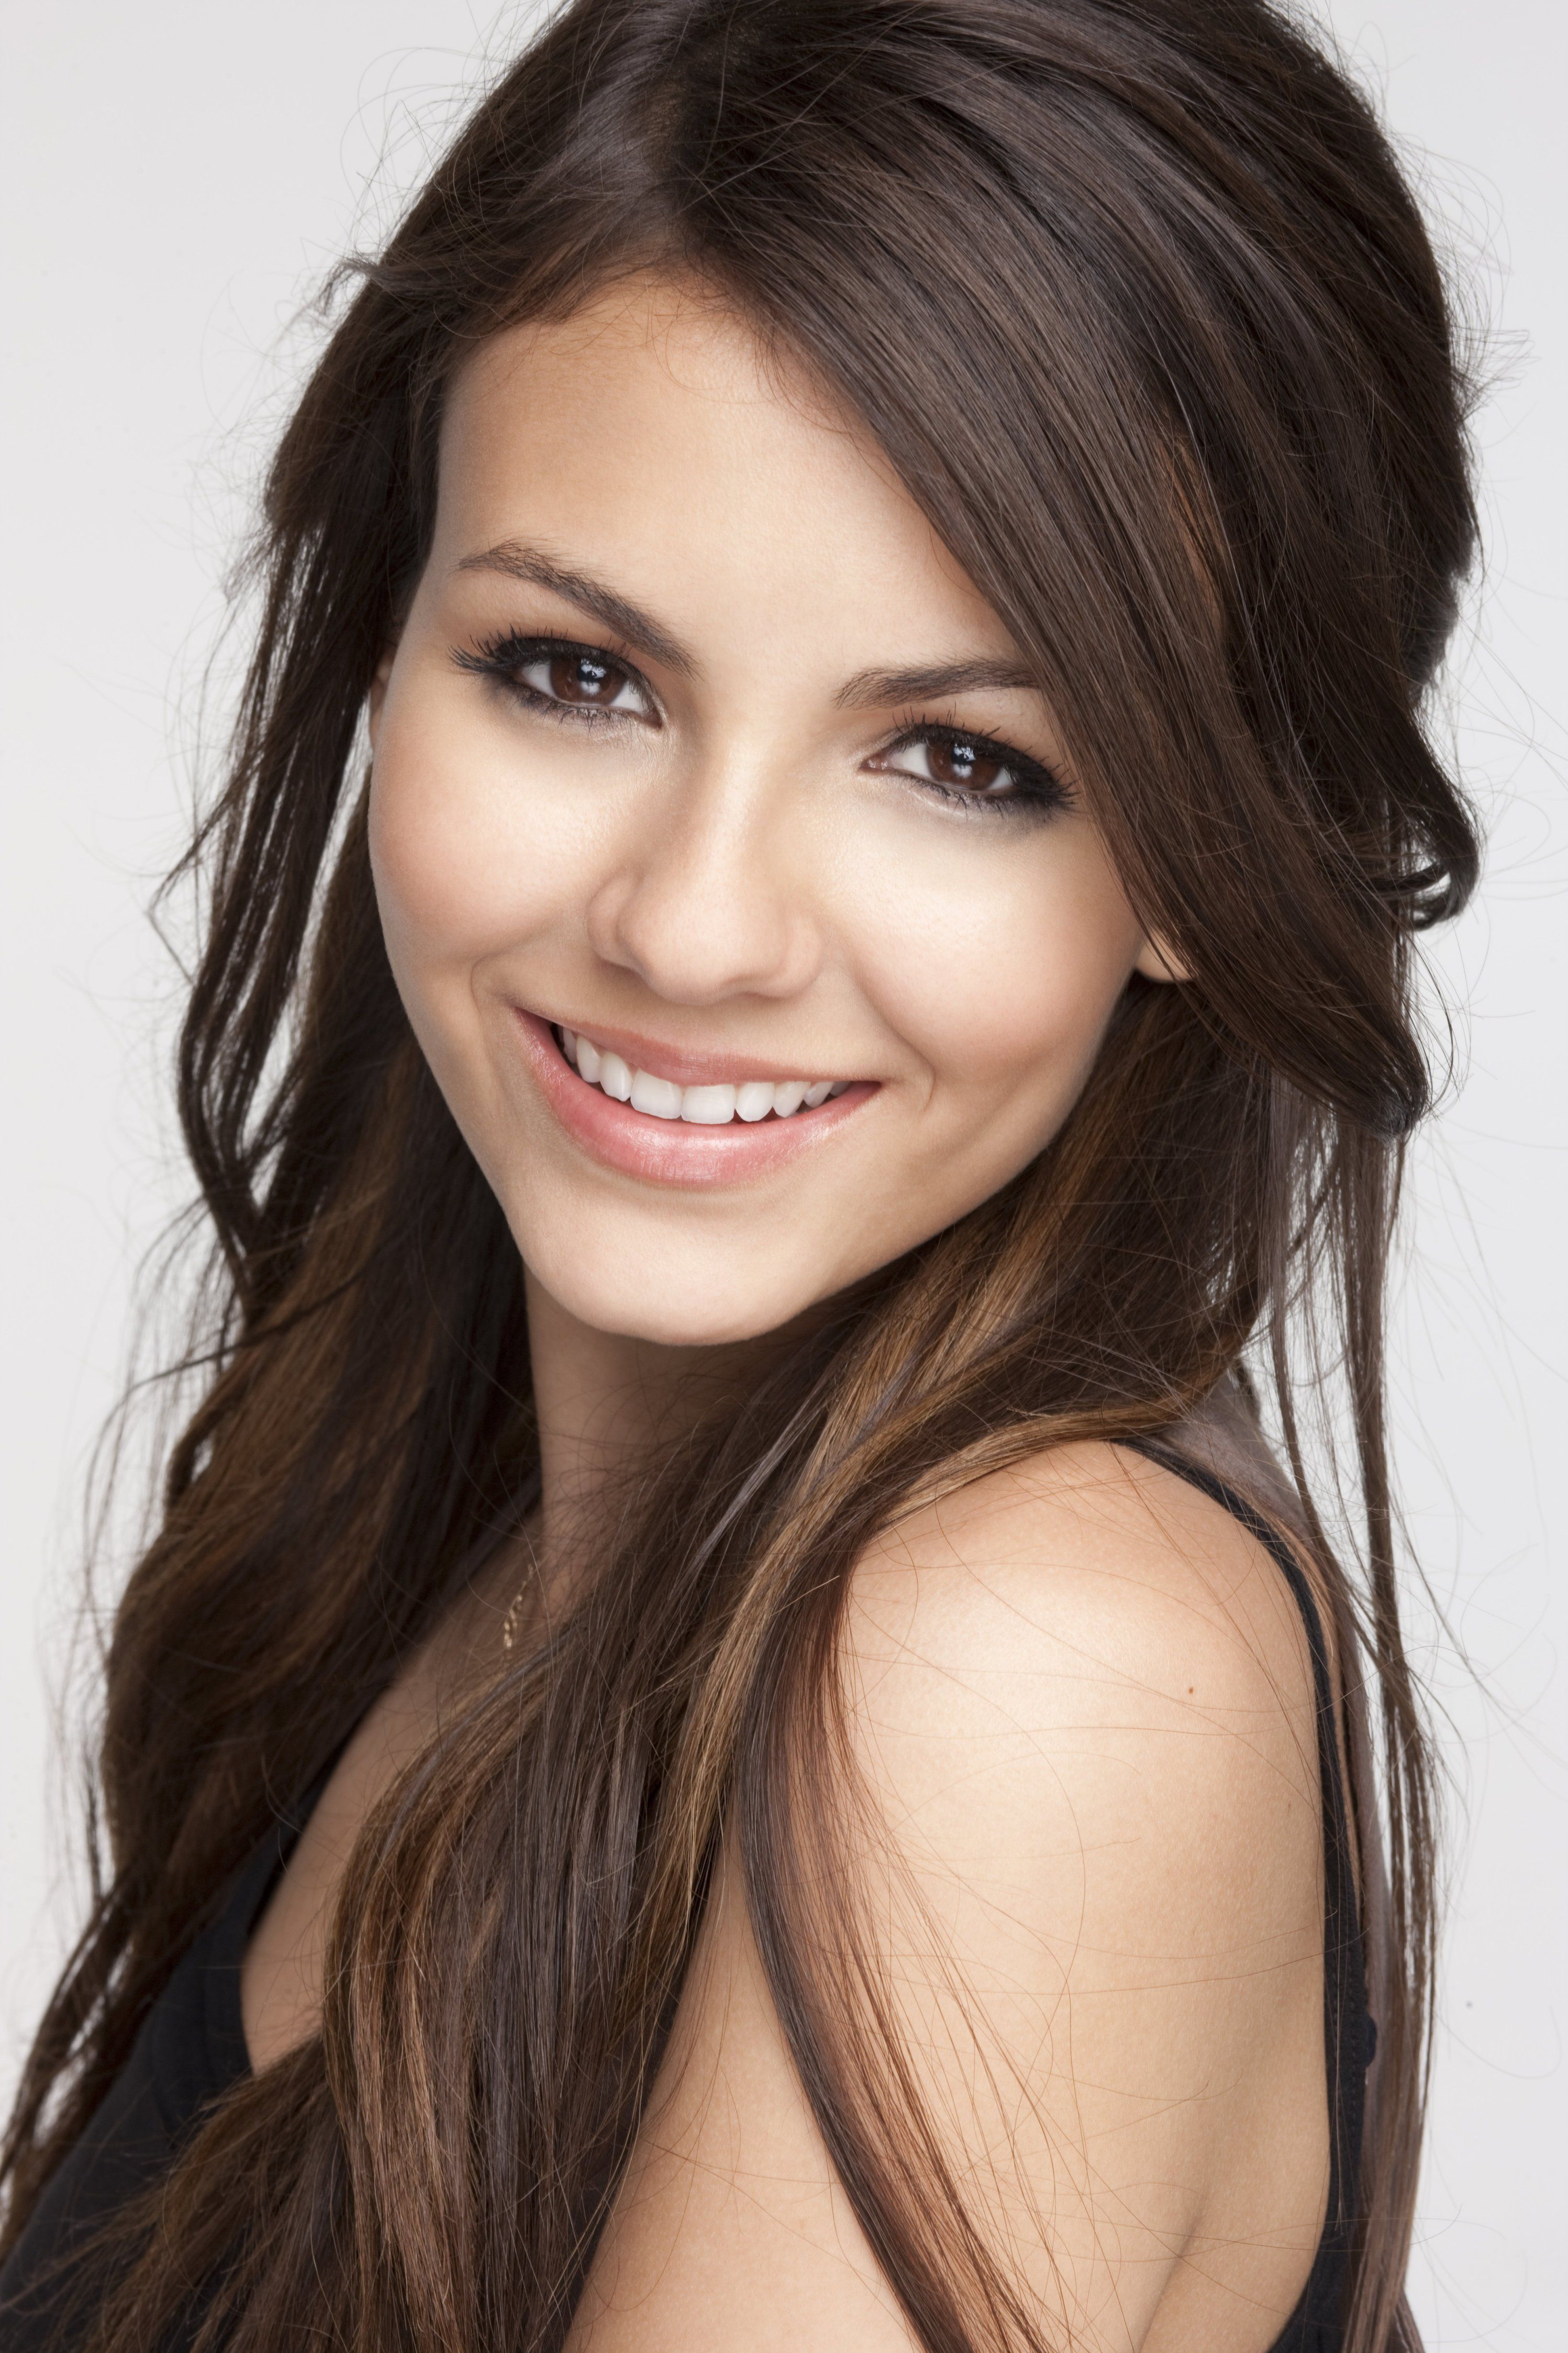 10+ images about Victoria justice on Pinterest | Ariana grande